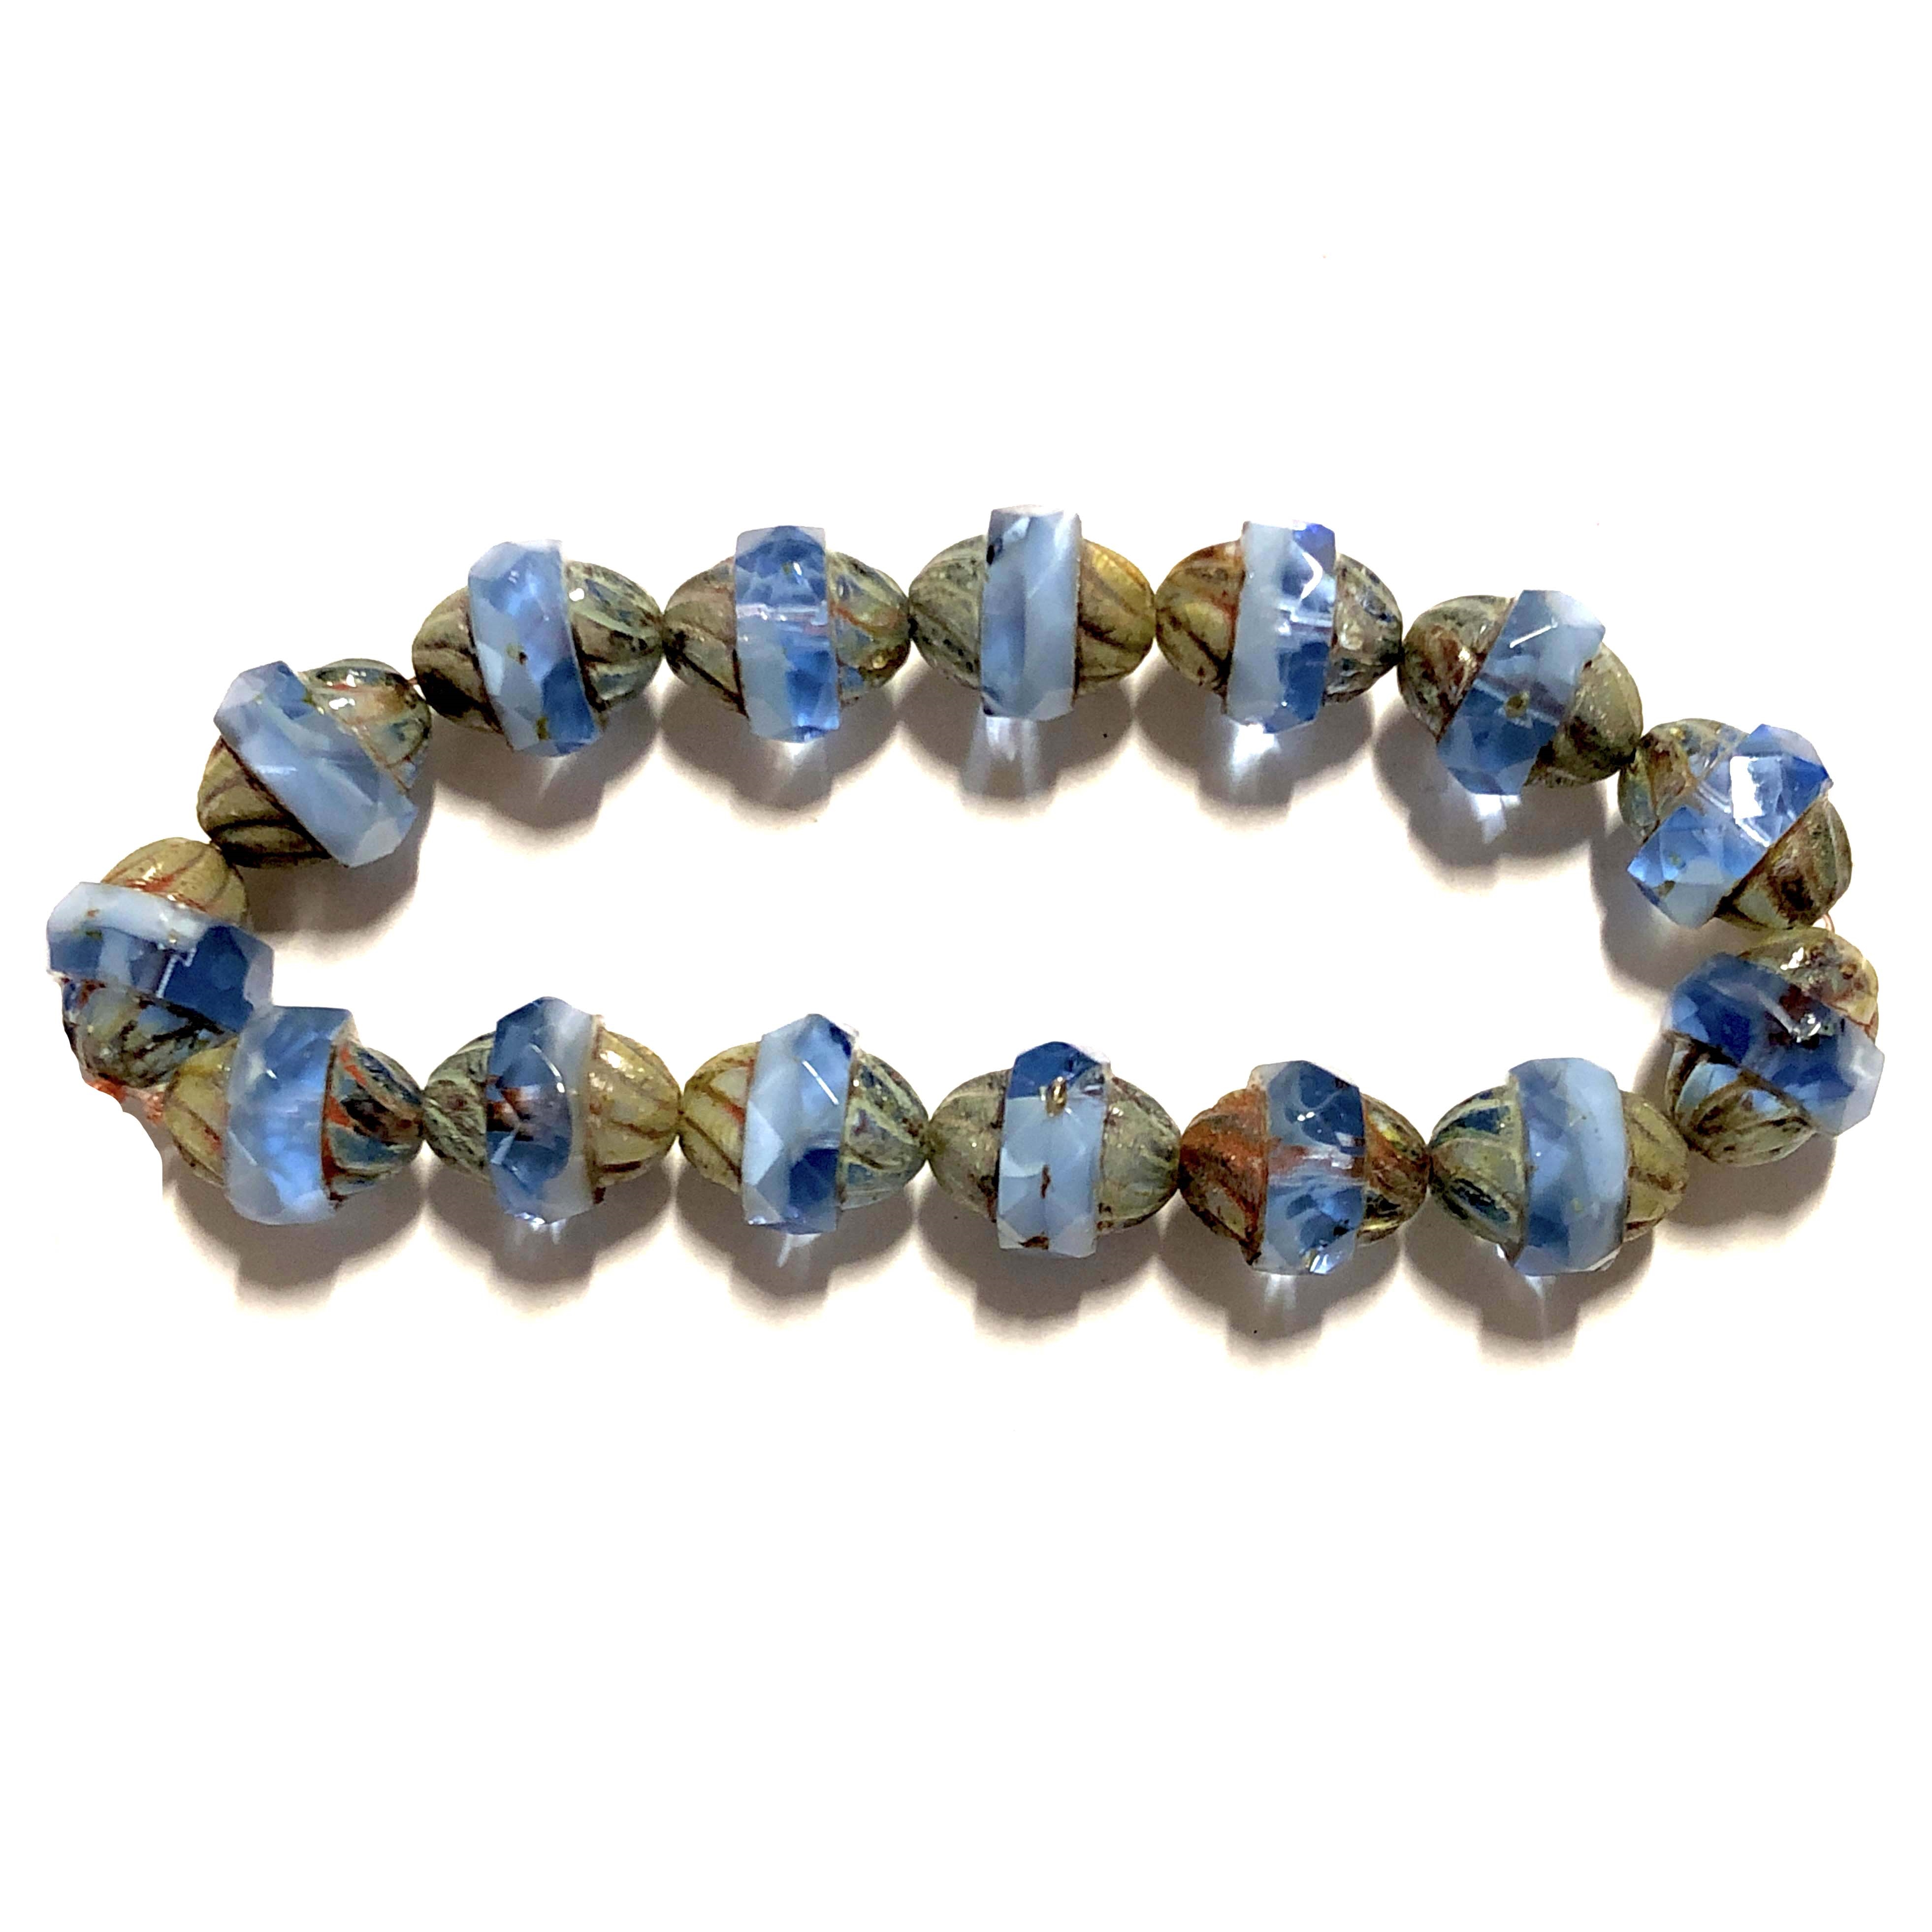 Turbine Cornflower Blue Picasso finish beads, blue beads, Czech glass beads, cornflower beads, fire polished, Czech, glass, Picasso, drilled, glass beads, US made, B'sue Boutiques, transparent beads, faceted beads, 11x10mm, 09332